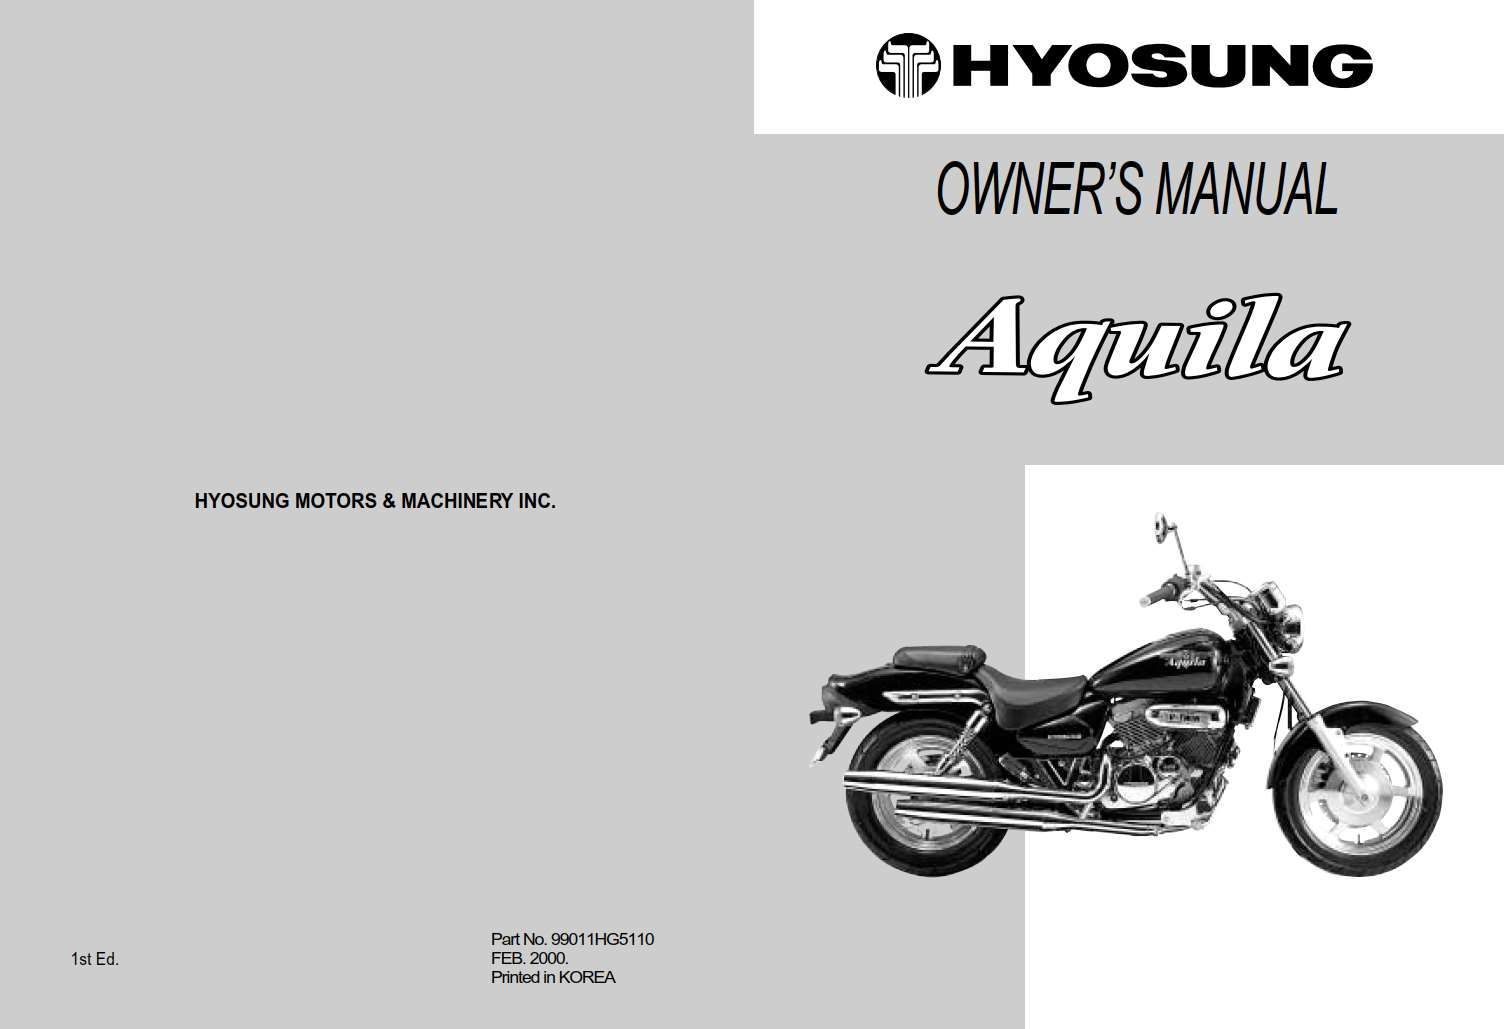 Hyosung Aquila 2000 Owner S Manual Has Been Published On Procarmanuals Com Https Procarmanuals Com Hyosung Aquila 2000 Owners Ma In 2020 Manual Owners Manuals Owners